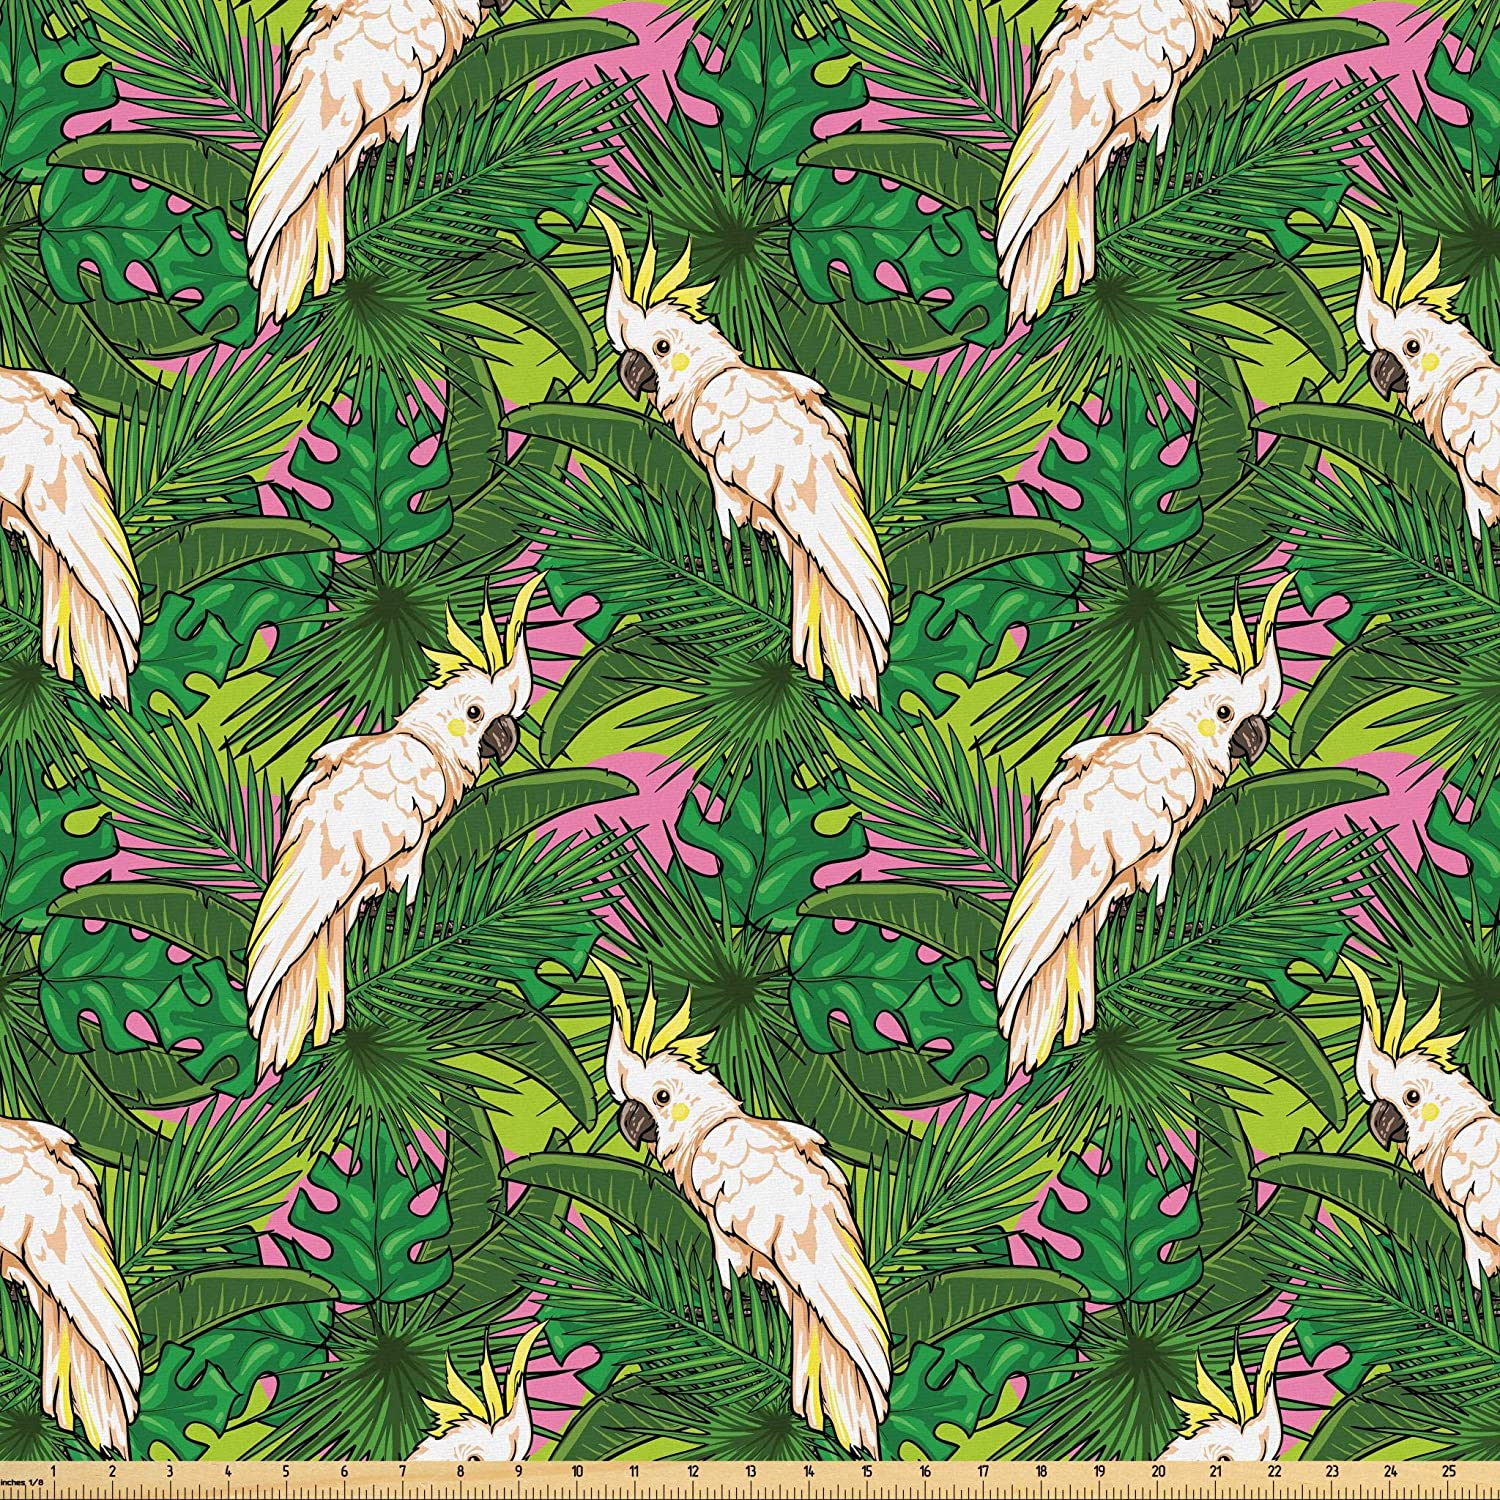 Lunarable Parrots Fabric by The Yard, Yellow Crested Cockatoo Bird with Tropical Foliage Exotic Caribbean Design, Microfiber Fabric for Arts and Crafts Textiles & Decor, 1 Yard, Cream Green